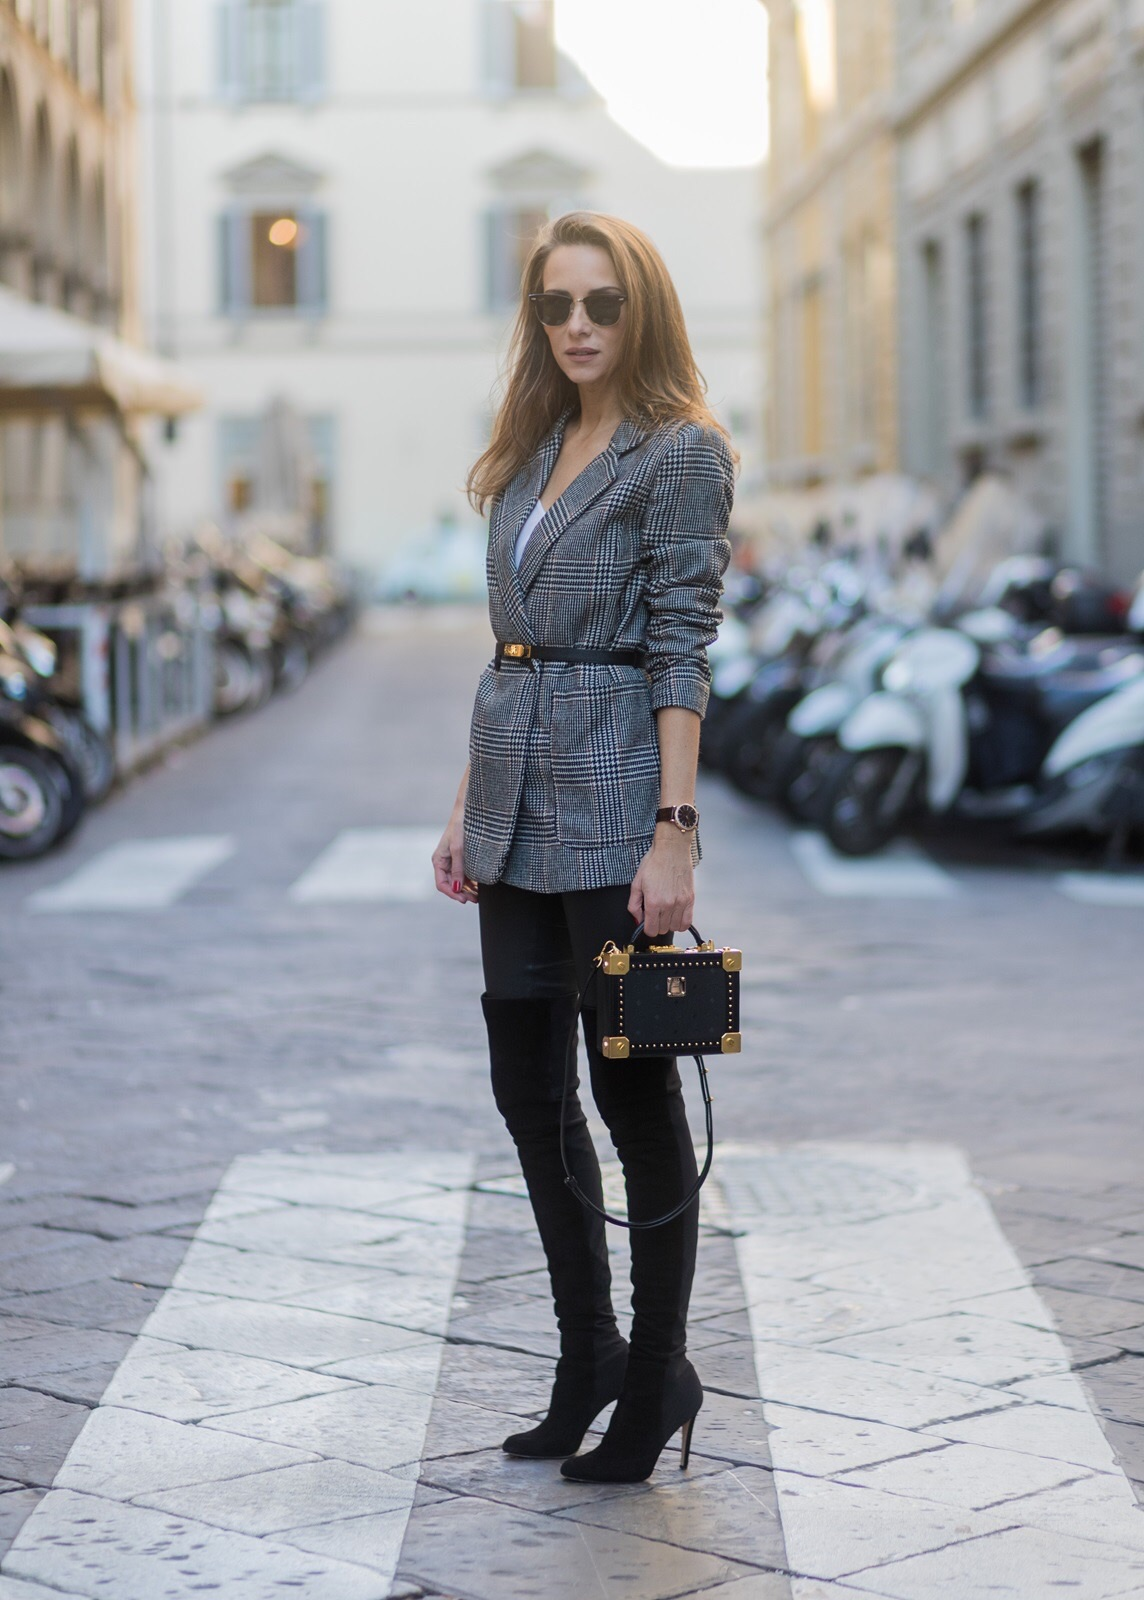 Italy January 11 German Fashion Blogger And Model Alexandra Lapp Is Wearing